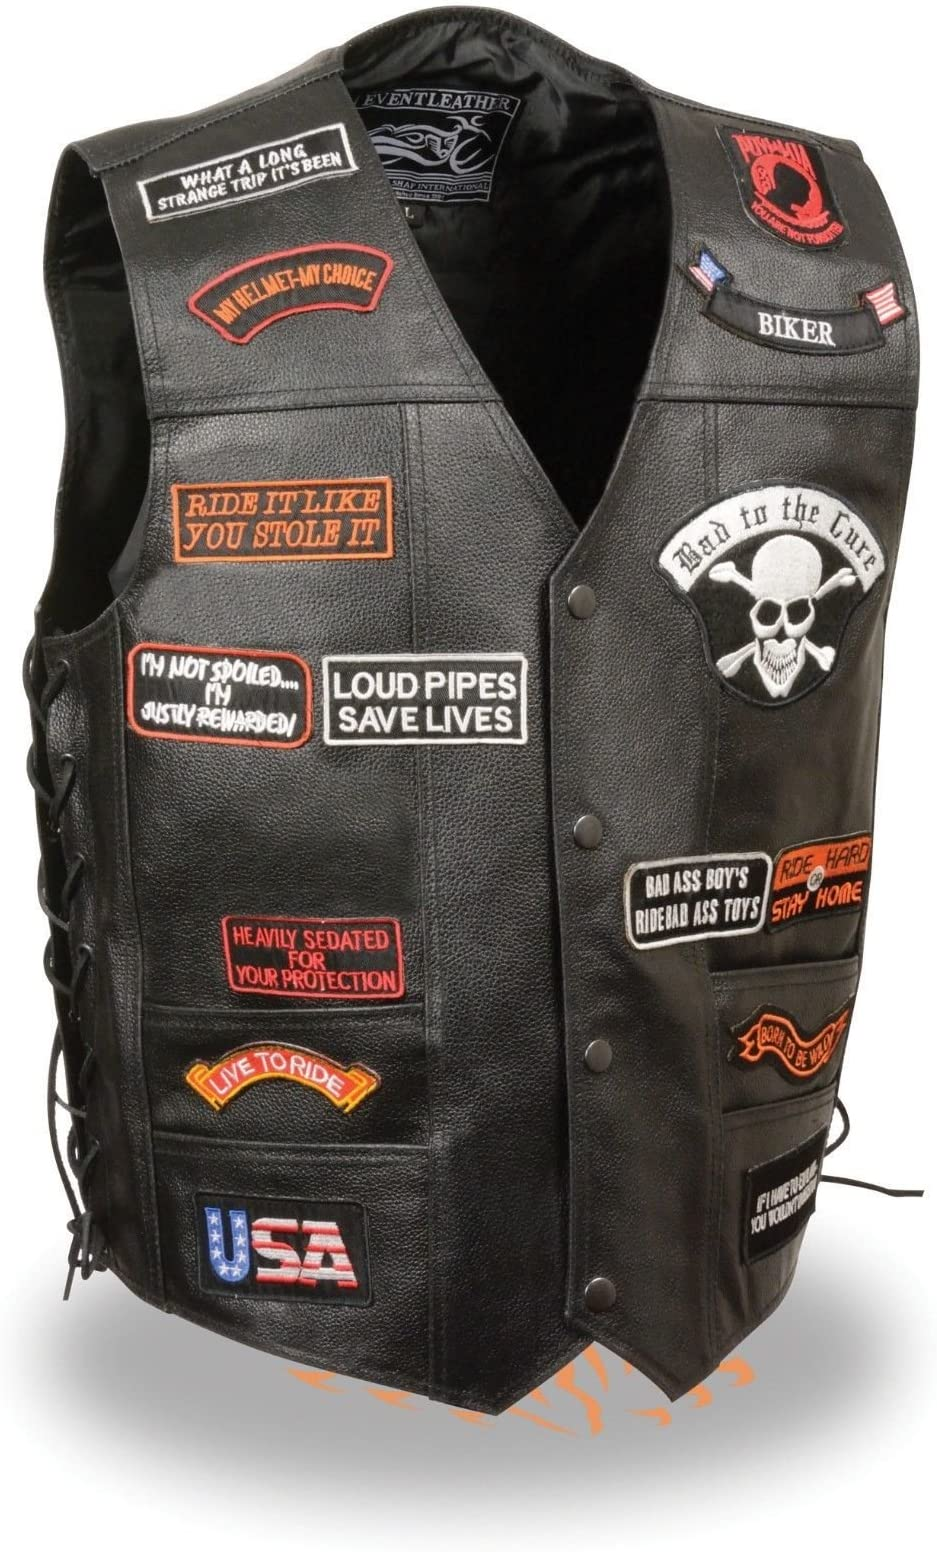 XXL Mens Motorcycle 10 Pocket Utility Leather Riding Vest Light weight Cow Hide leather Side Laces